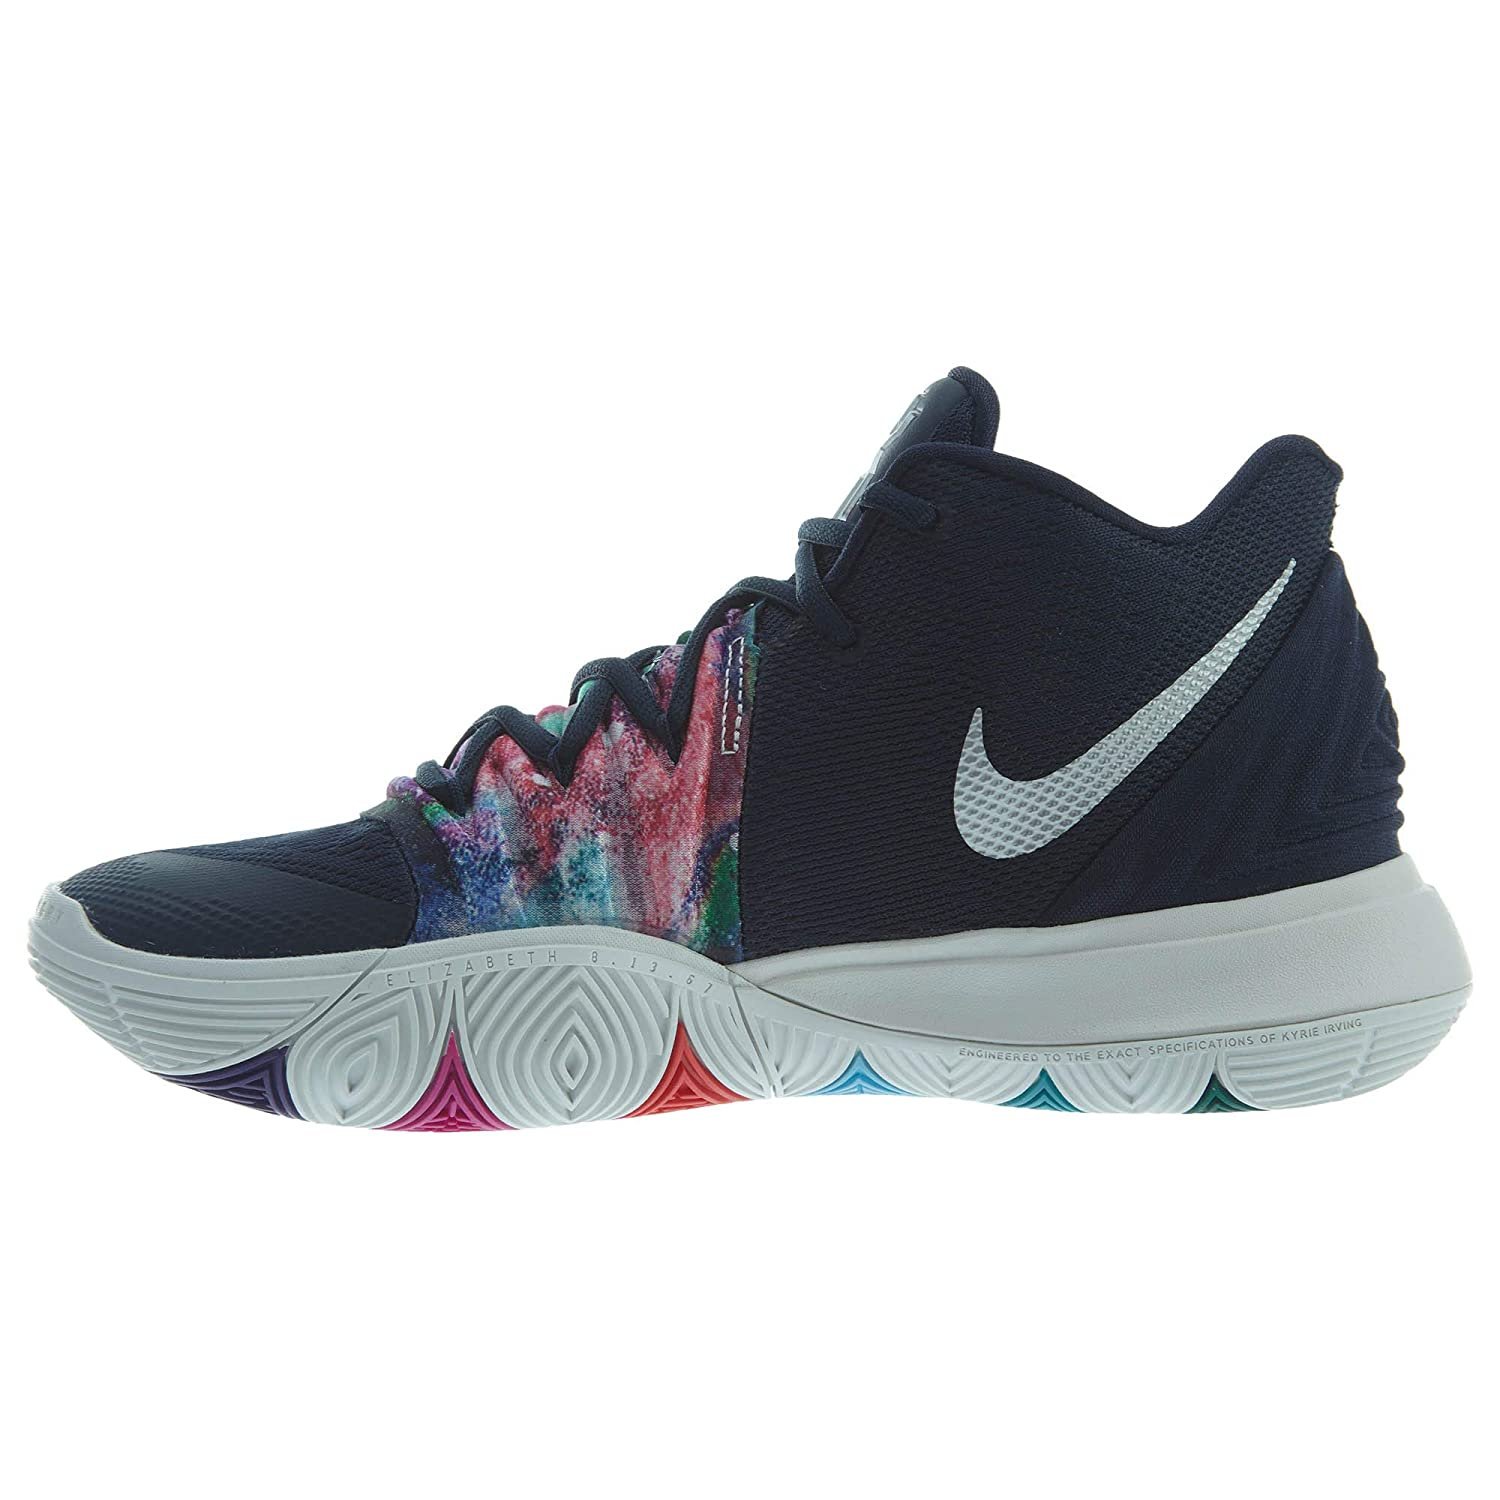 best service b9892 94f7b Amazon.com   Nike Men s Kyrie 5 Basketball Shoes   Basketball